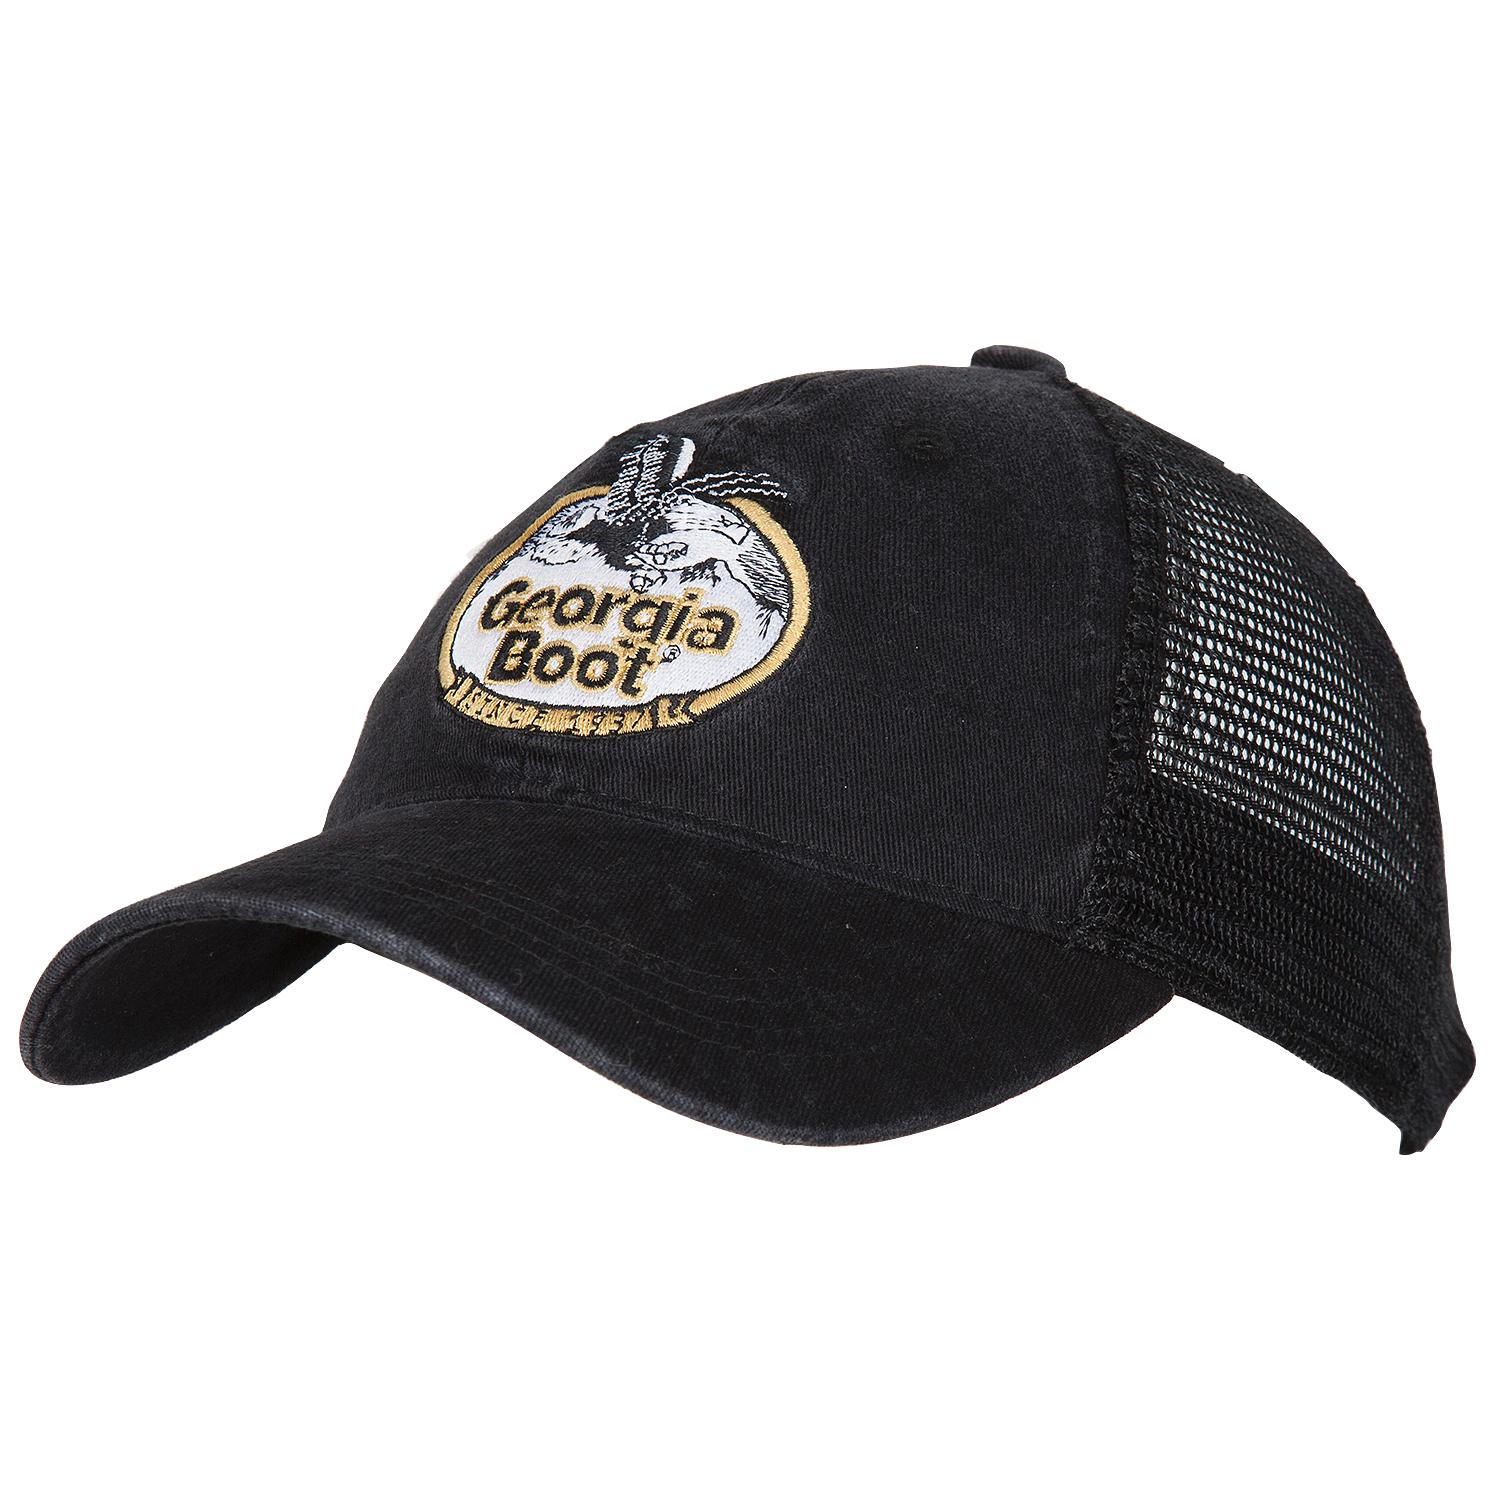 a4827d01579 Georgia Boot Black Trucker Hat with snap close